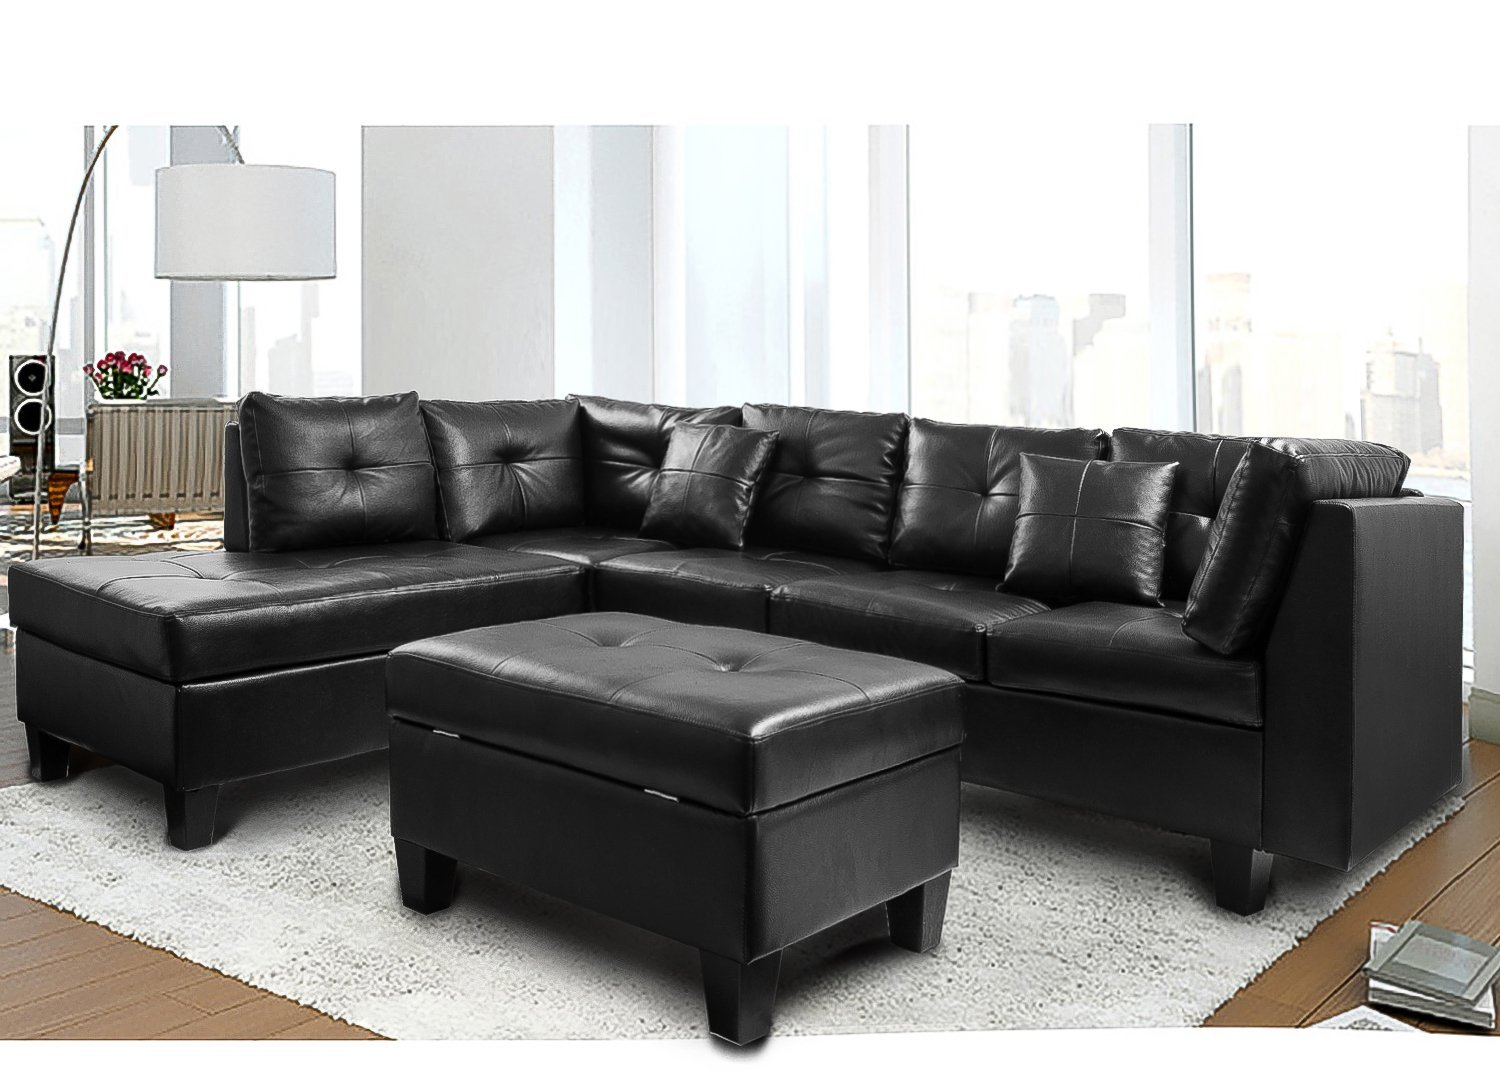 Charmant Harper U0026 Bright Designs Sectional Sofa With Chaise And Storage Ottoman,  Black